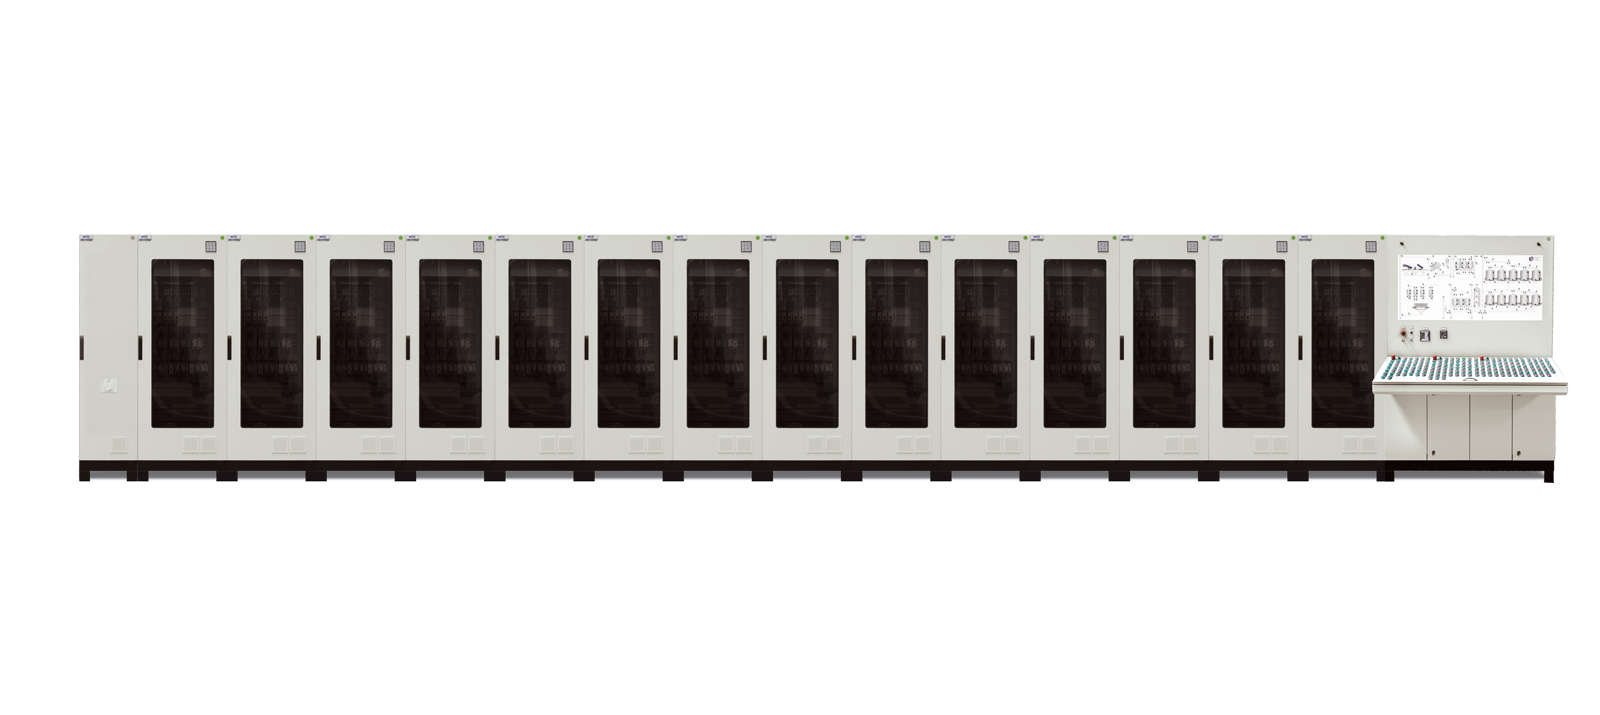 LTD - Switch Panels Center and Secondary Distribution Panels are Inner Covered1